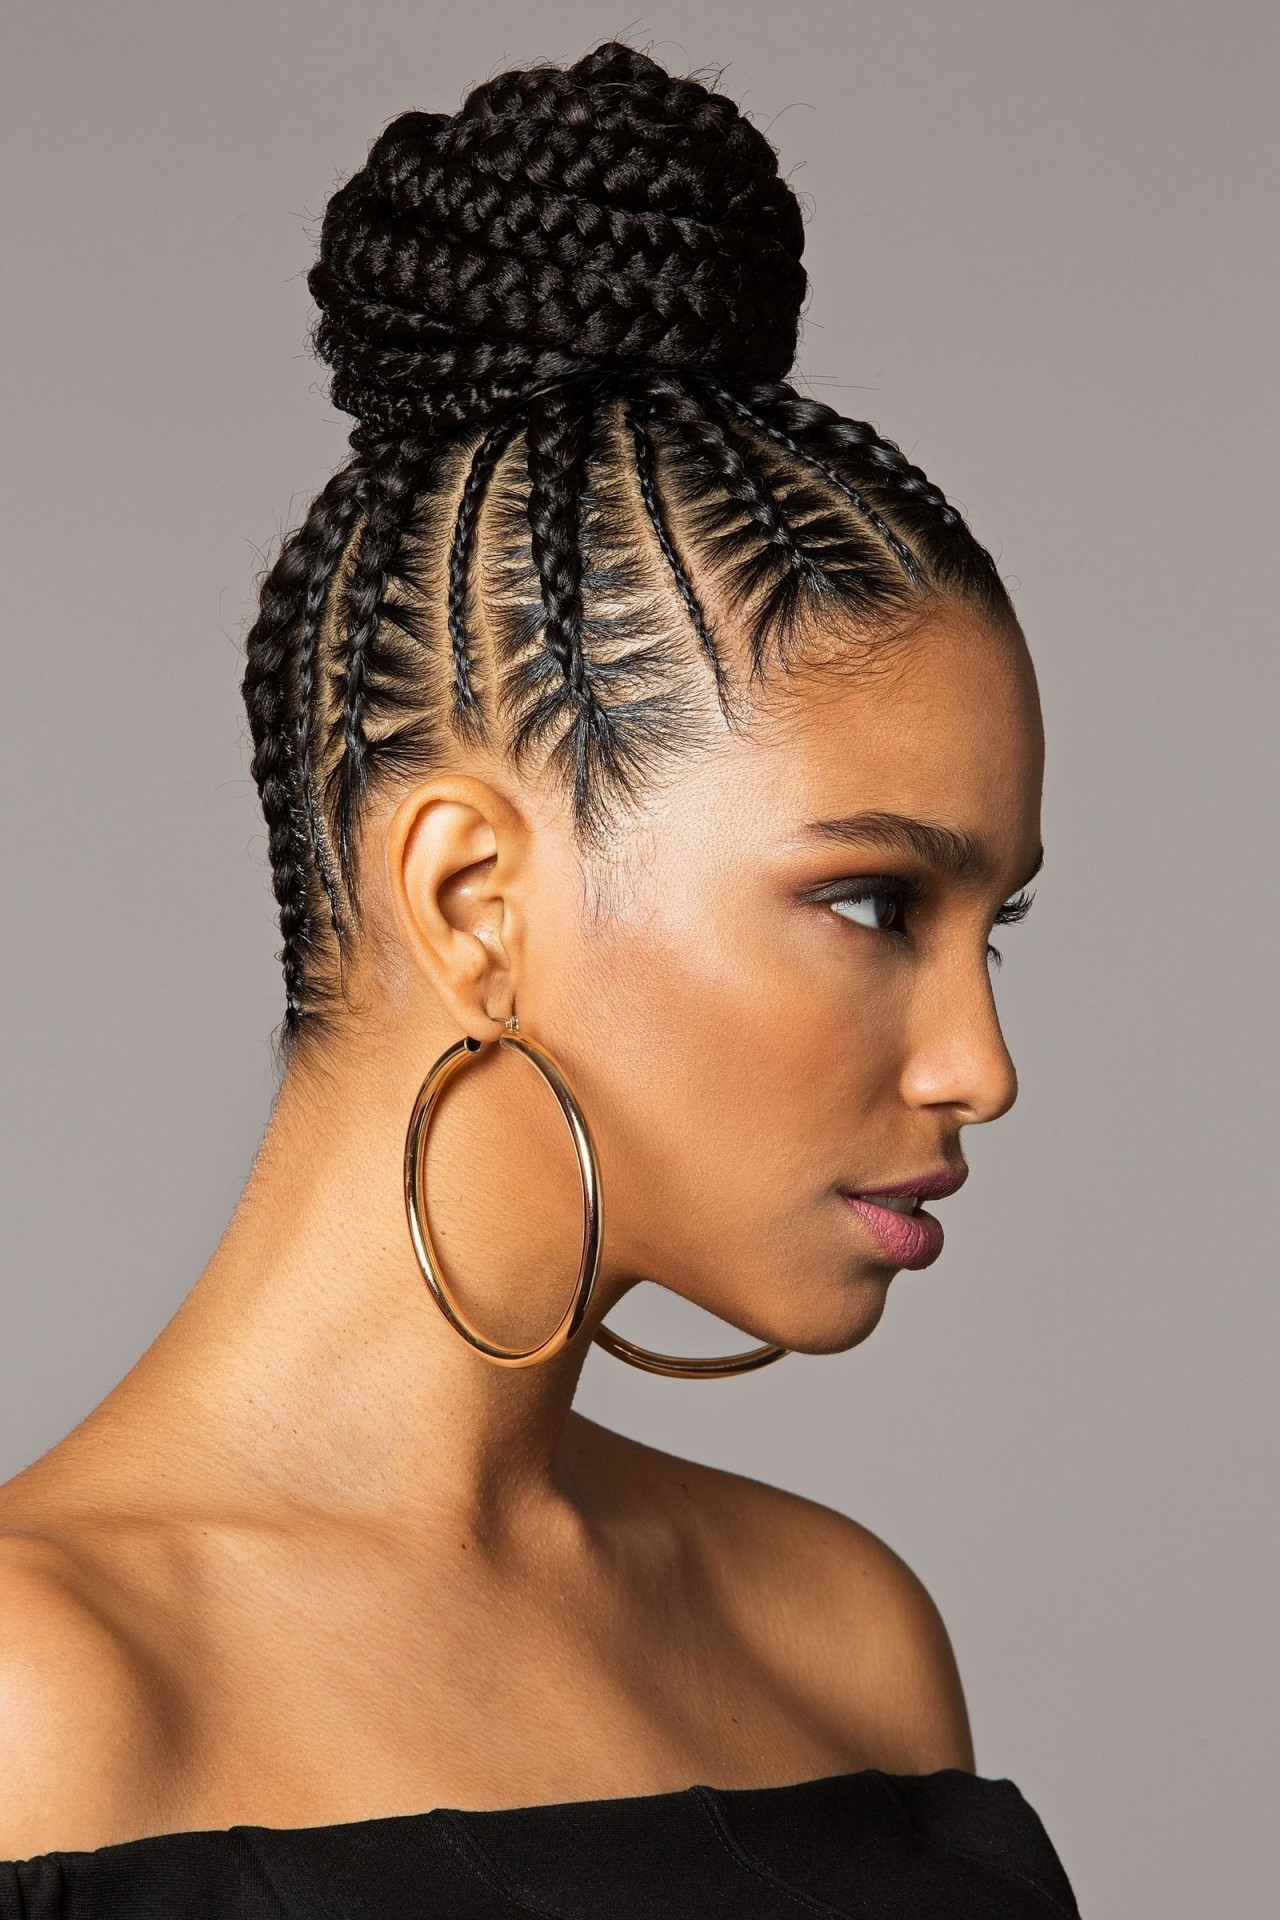 Updo Cornrow Hairstyles For Black Women 2018 – Twelveminutemuse Inside Well Known Cornrows Hairstyles For Black Woman (View 7 of 15)